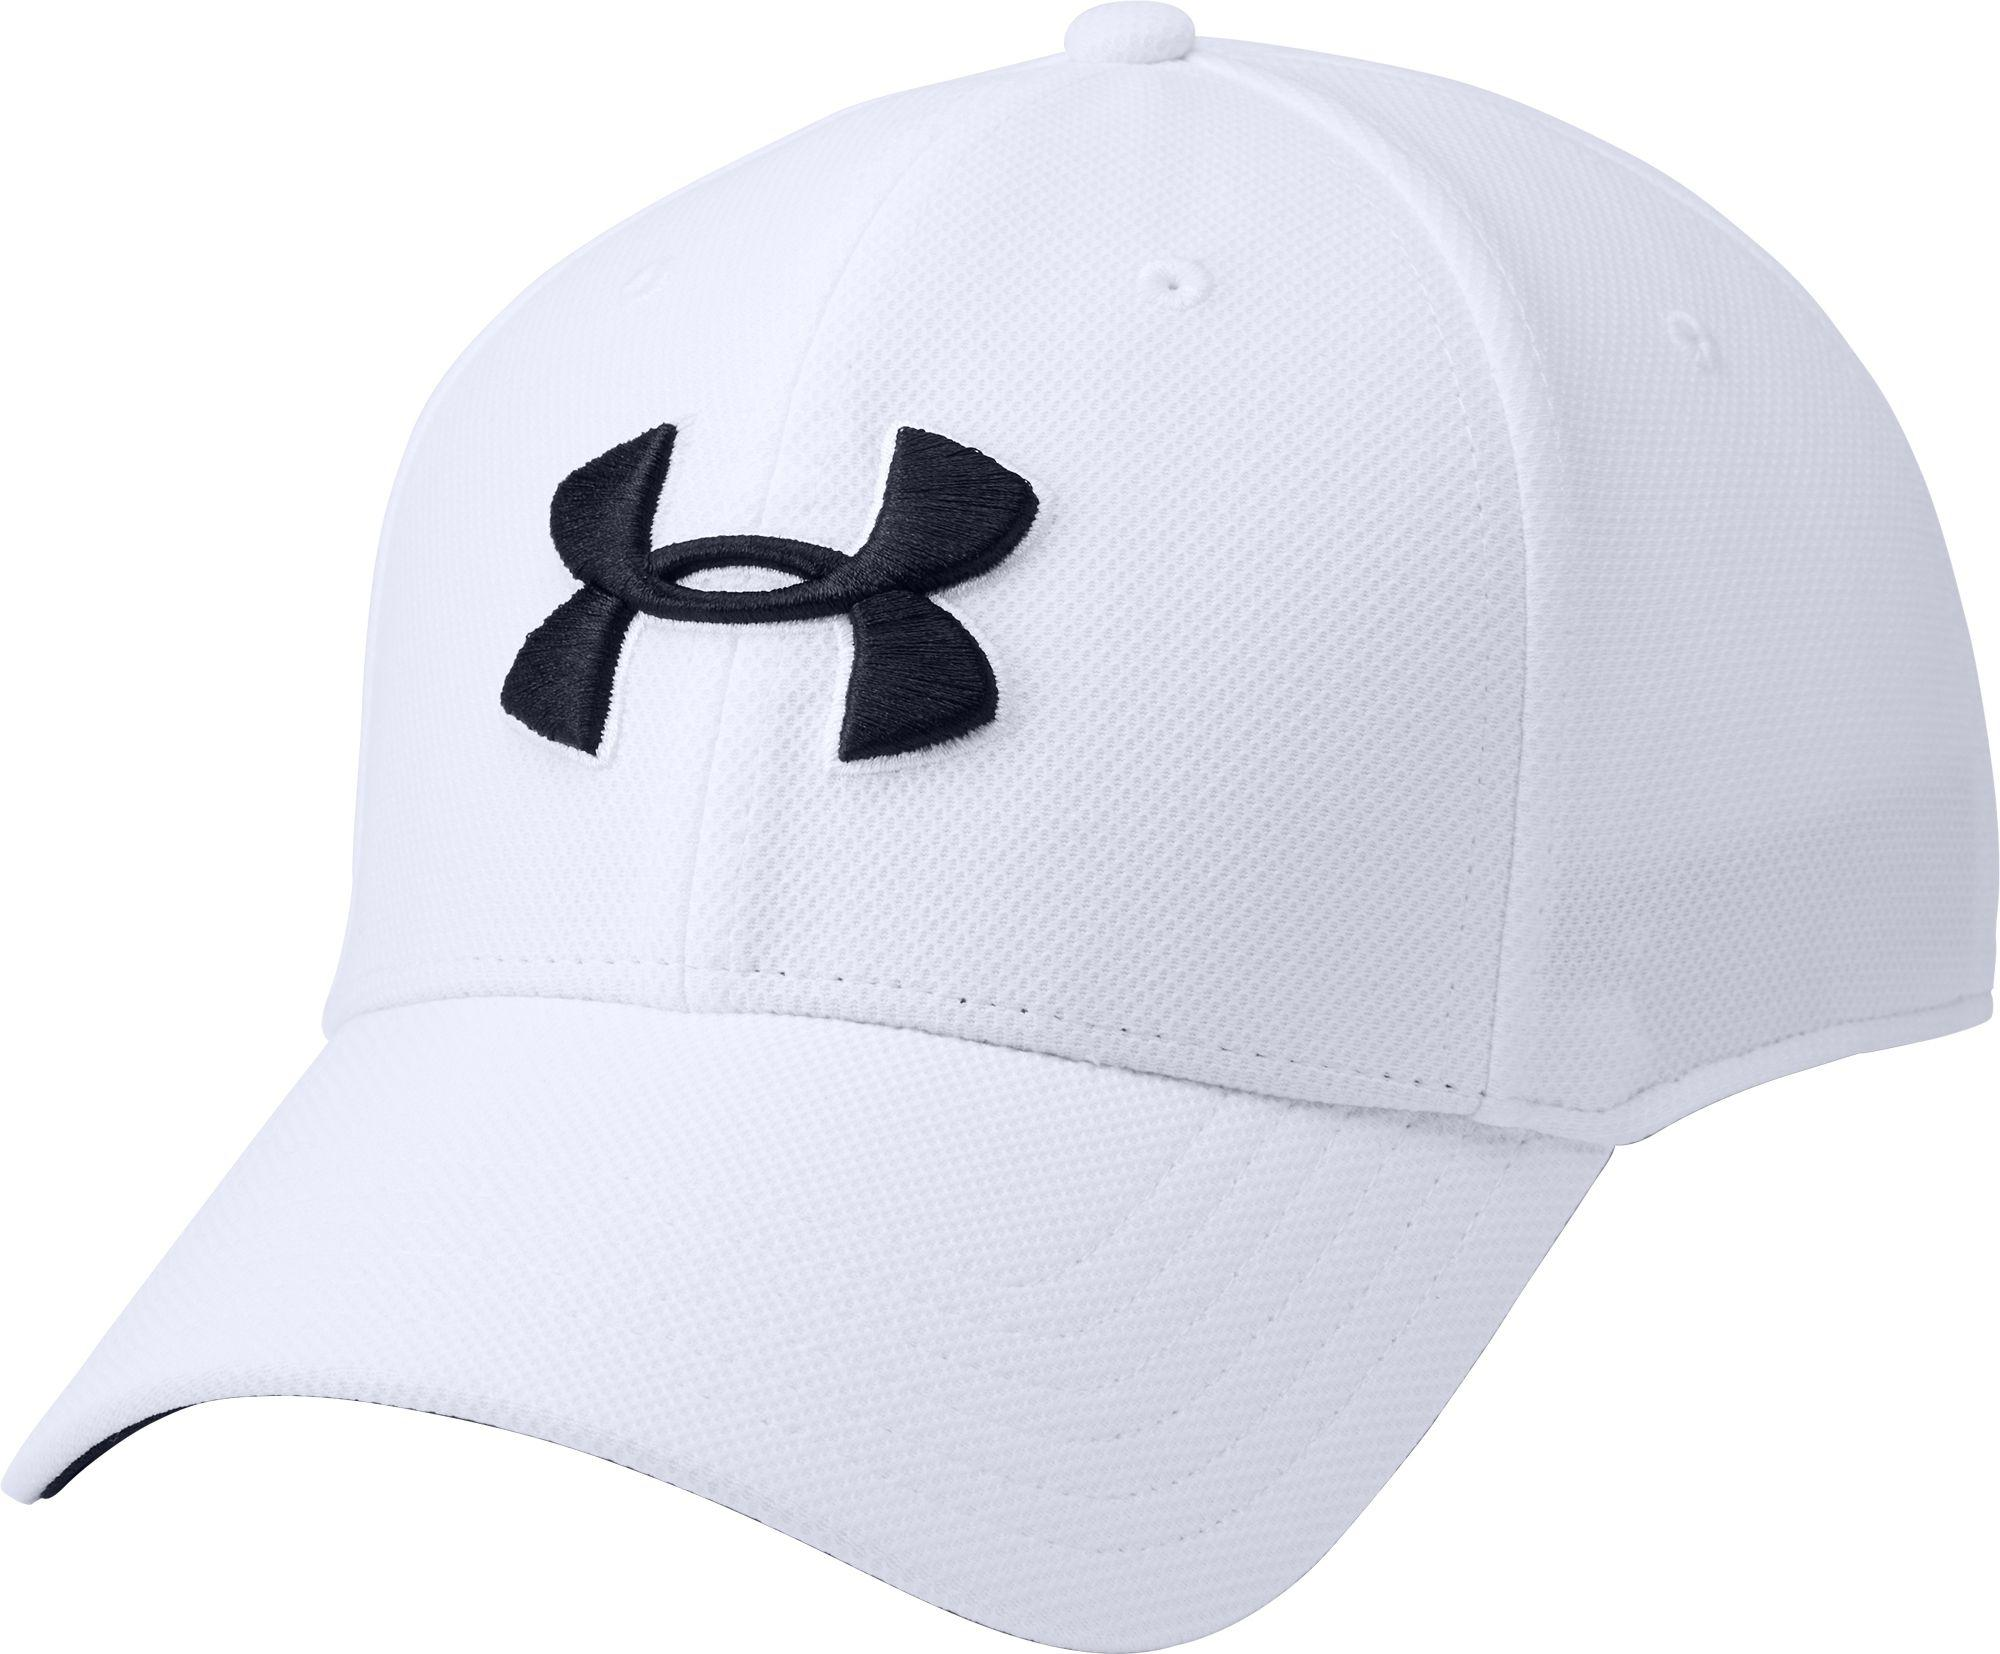 59eafe0bfc4 Lyst - Under Armour Litzing Hat 3.0 in White for Men